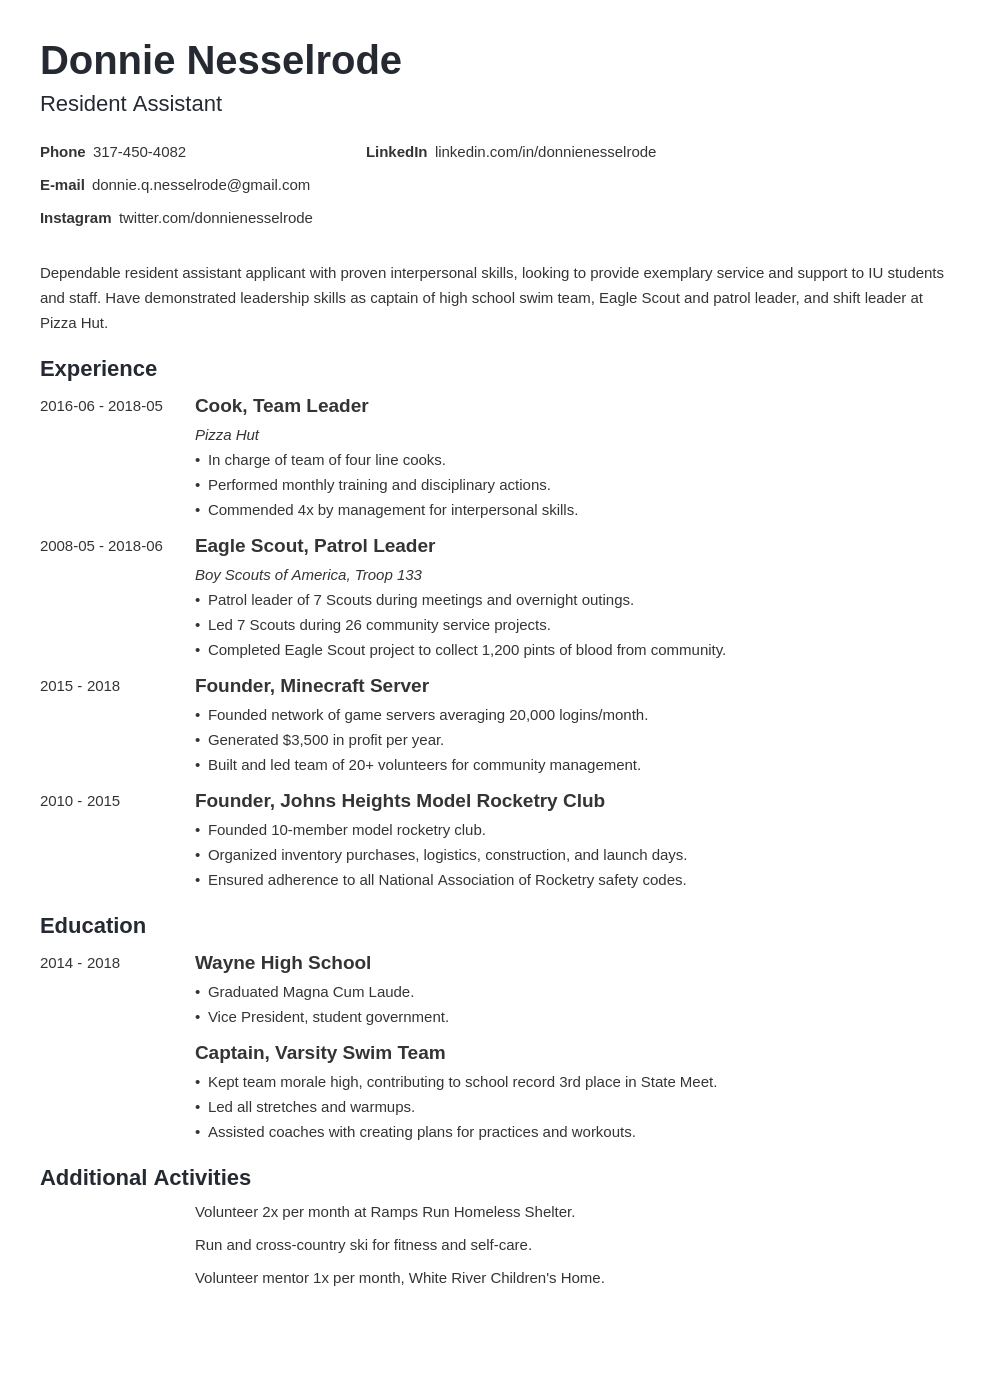 Resident Assistant Resume Example Template Minimo Resume Examples Best Resume Format Resident Assistant